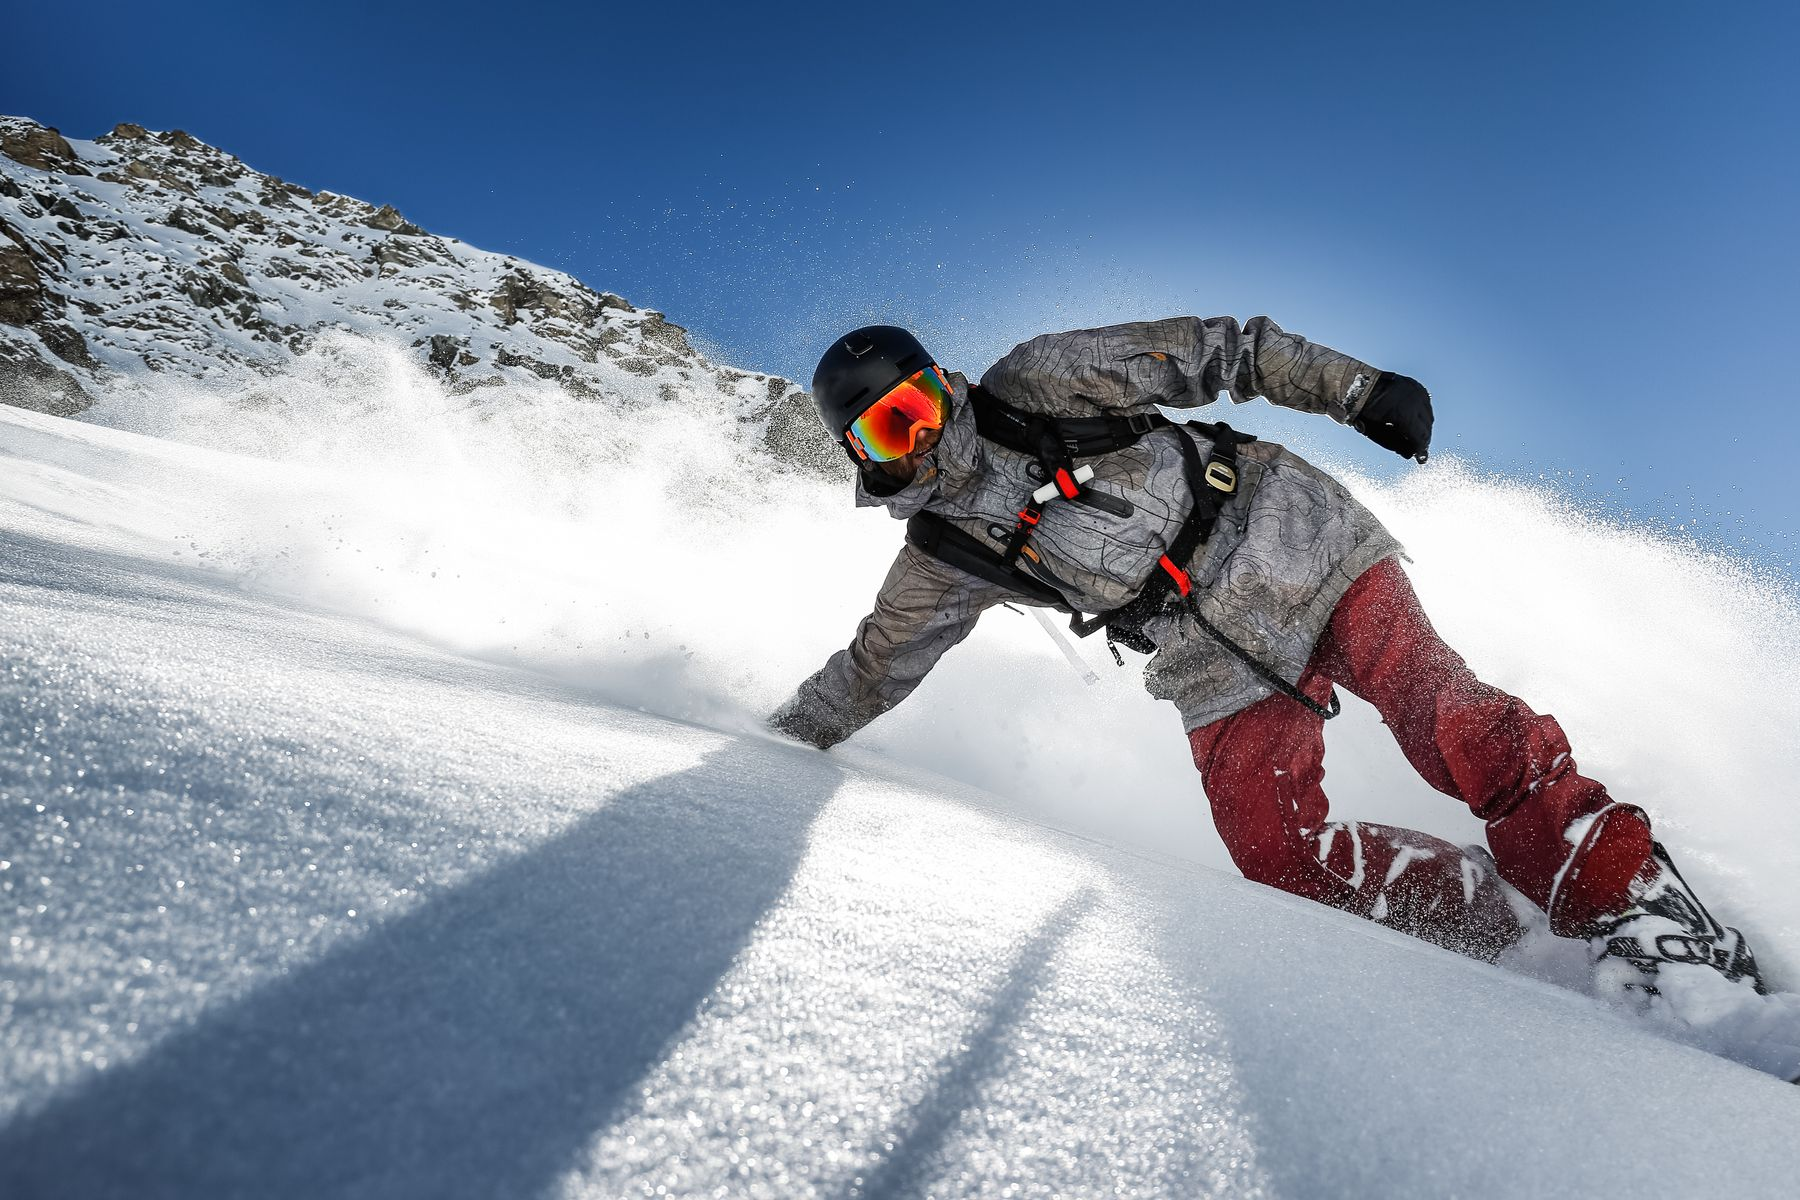 person skiing on a powdery mountain on a sunny day